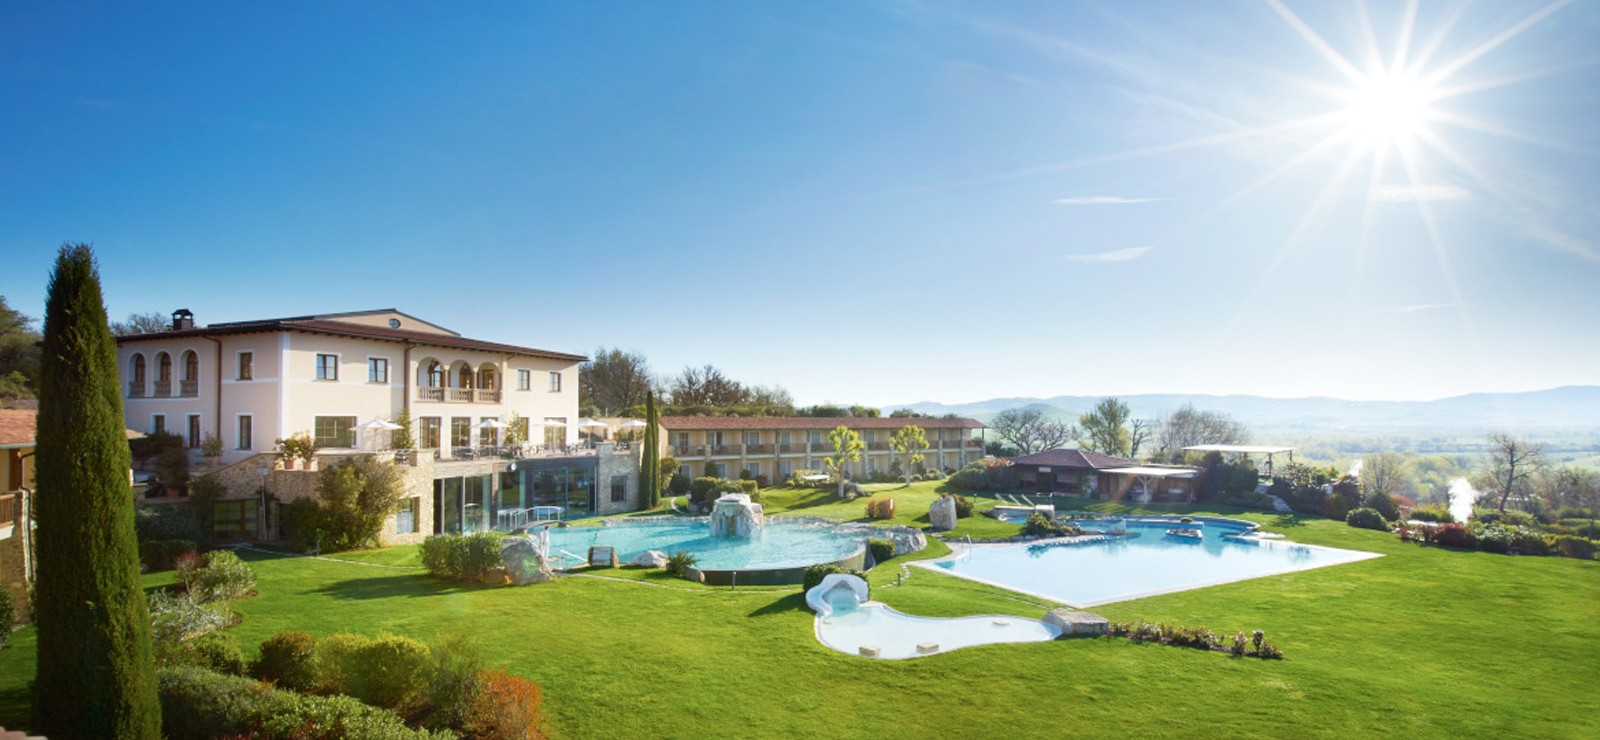 ADLER Spa Resort THERMAE Bilder | Bild 1